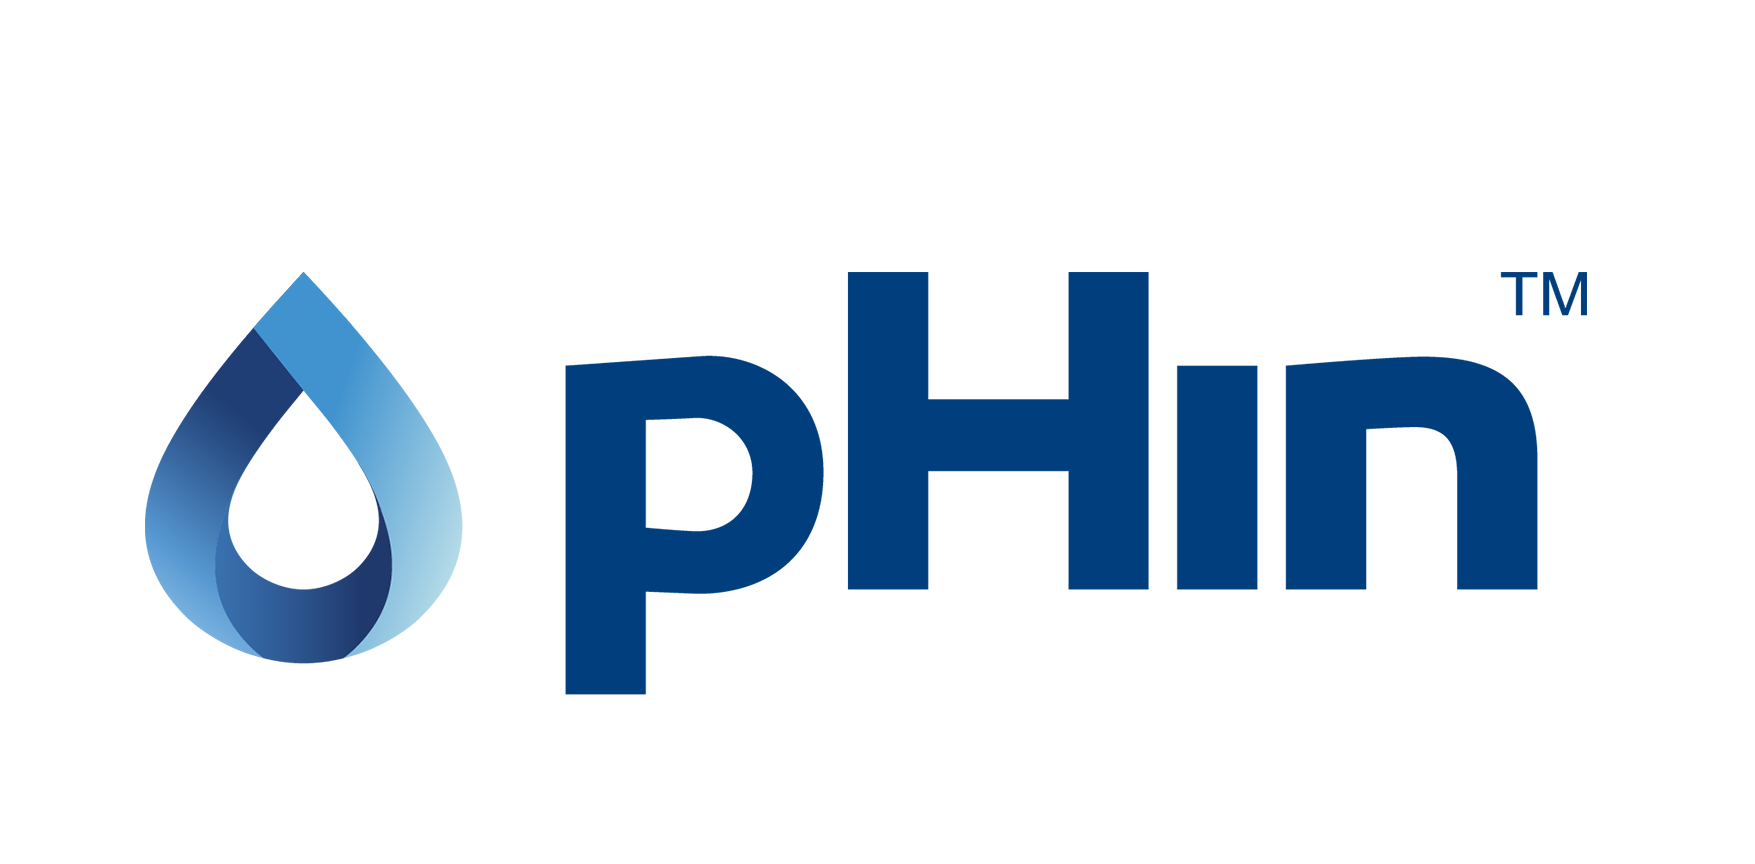 pHin Specialty Chemicals